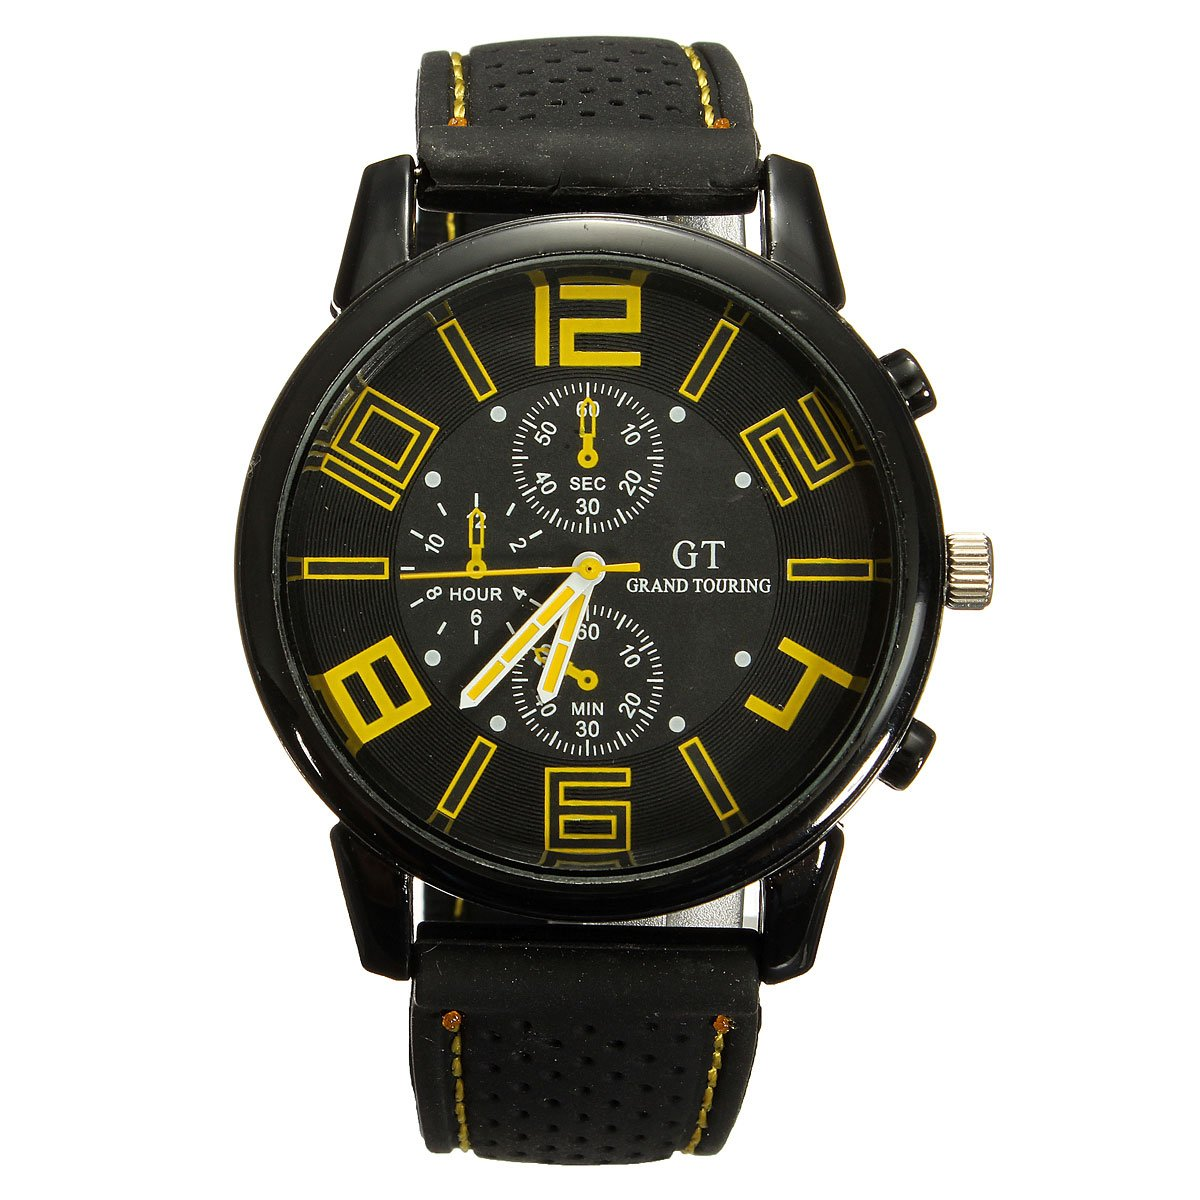 Grand Touring Bracelet Watch Man Quartz Analog Silicone Quartz Wrist Watch Big Dial Yellow and Black super speed v0169 fashionable silicone band men s quartz analog wrist watch blue 1 x lr626